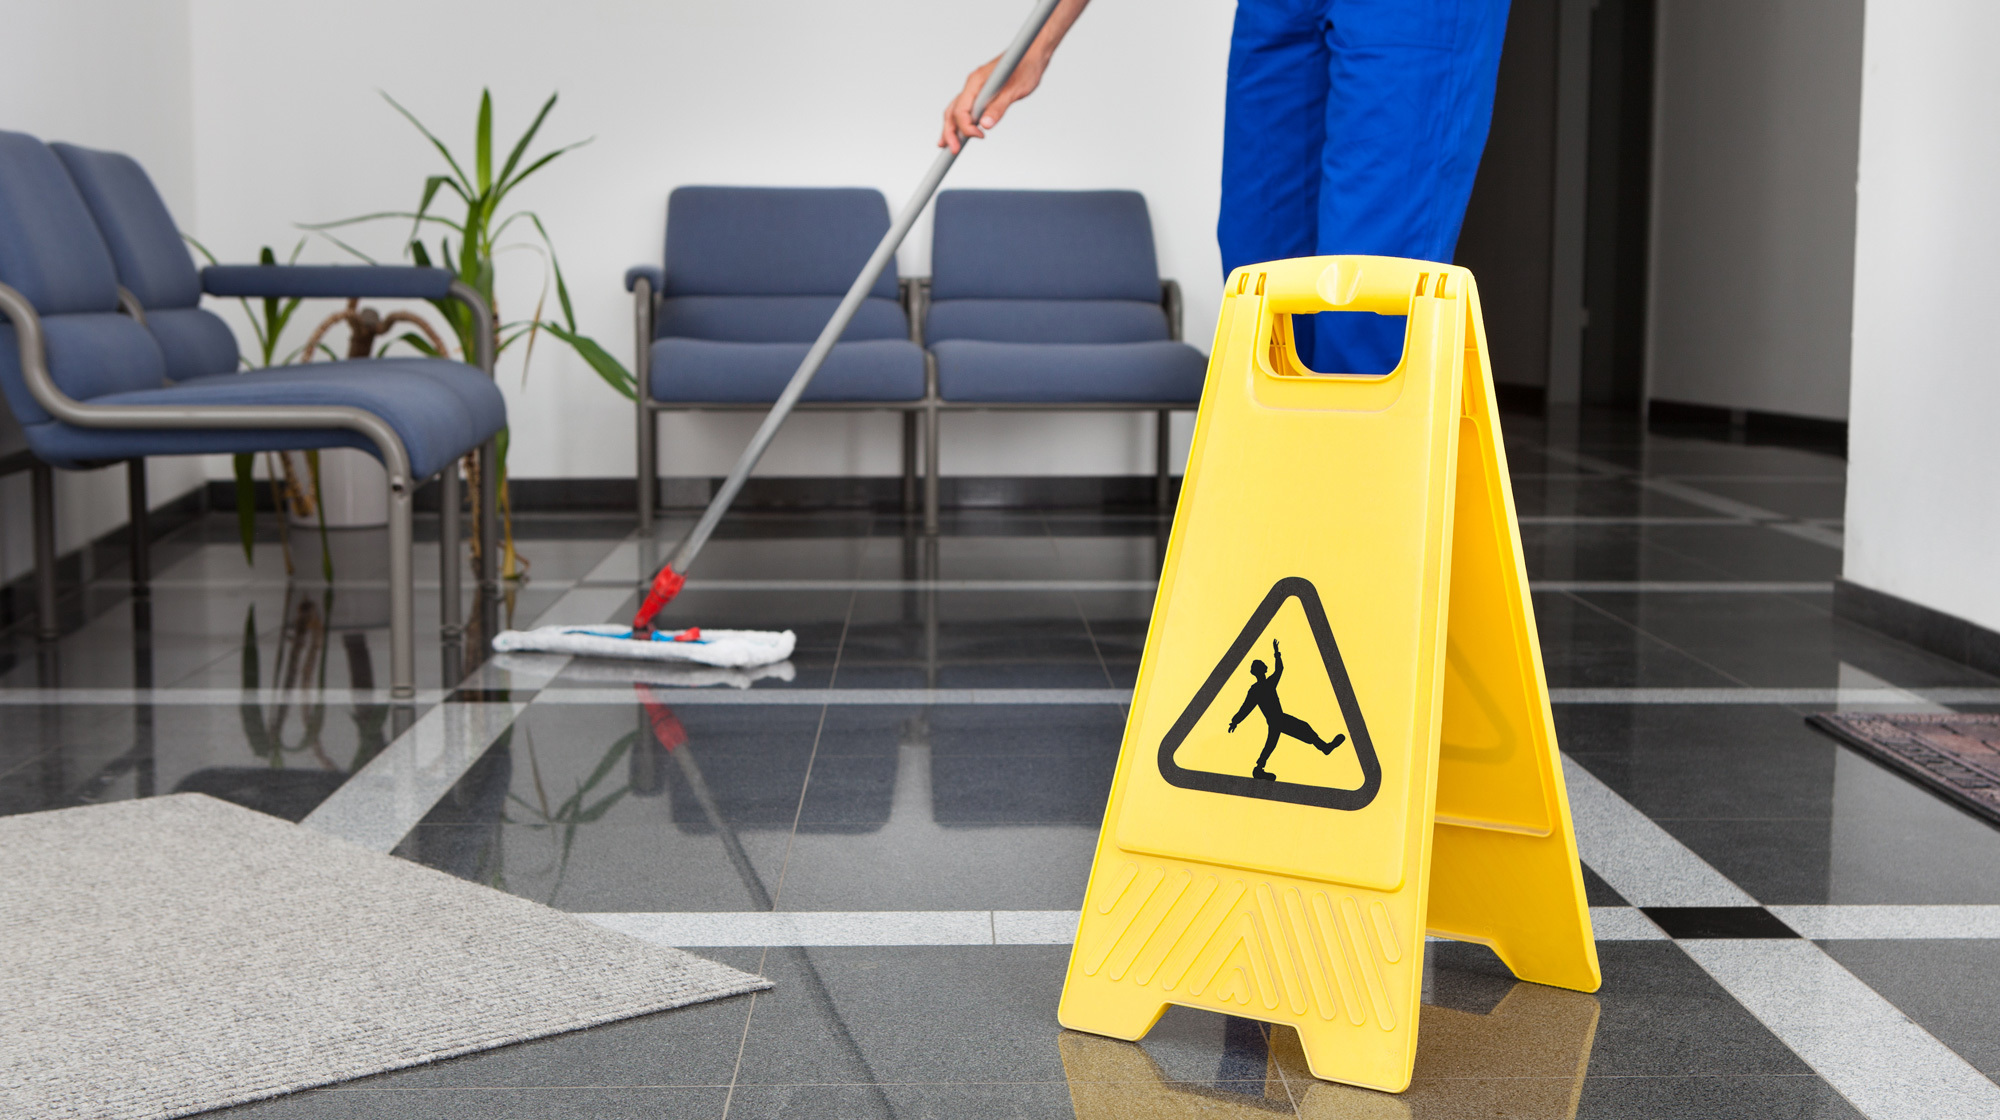 Expert performing excellent cleaning services in a commercial area in Waterbury, CT